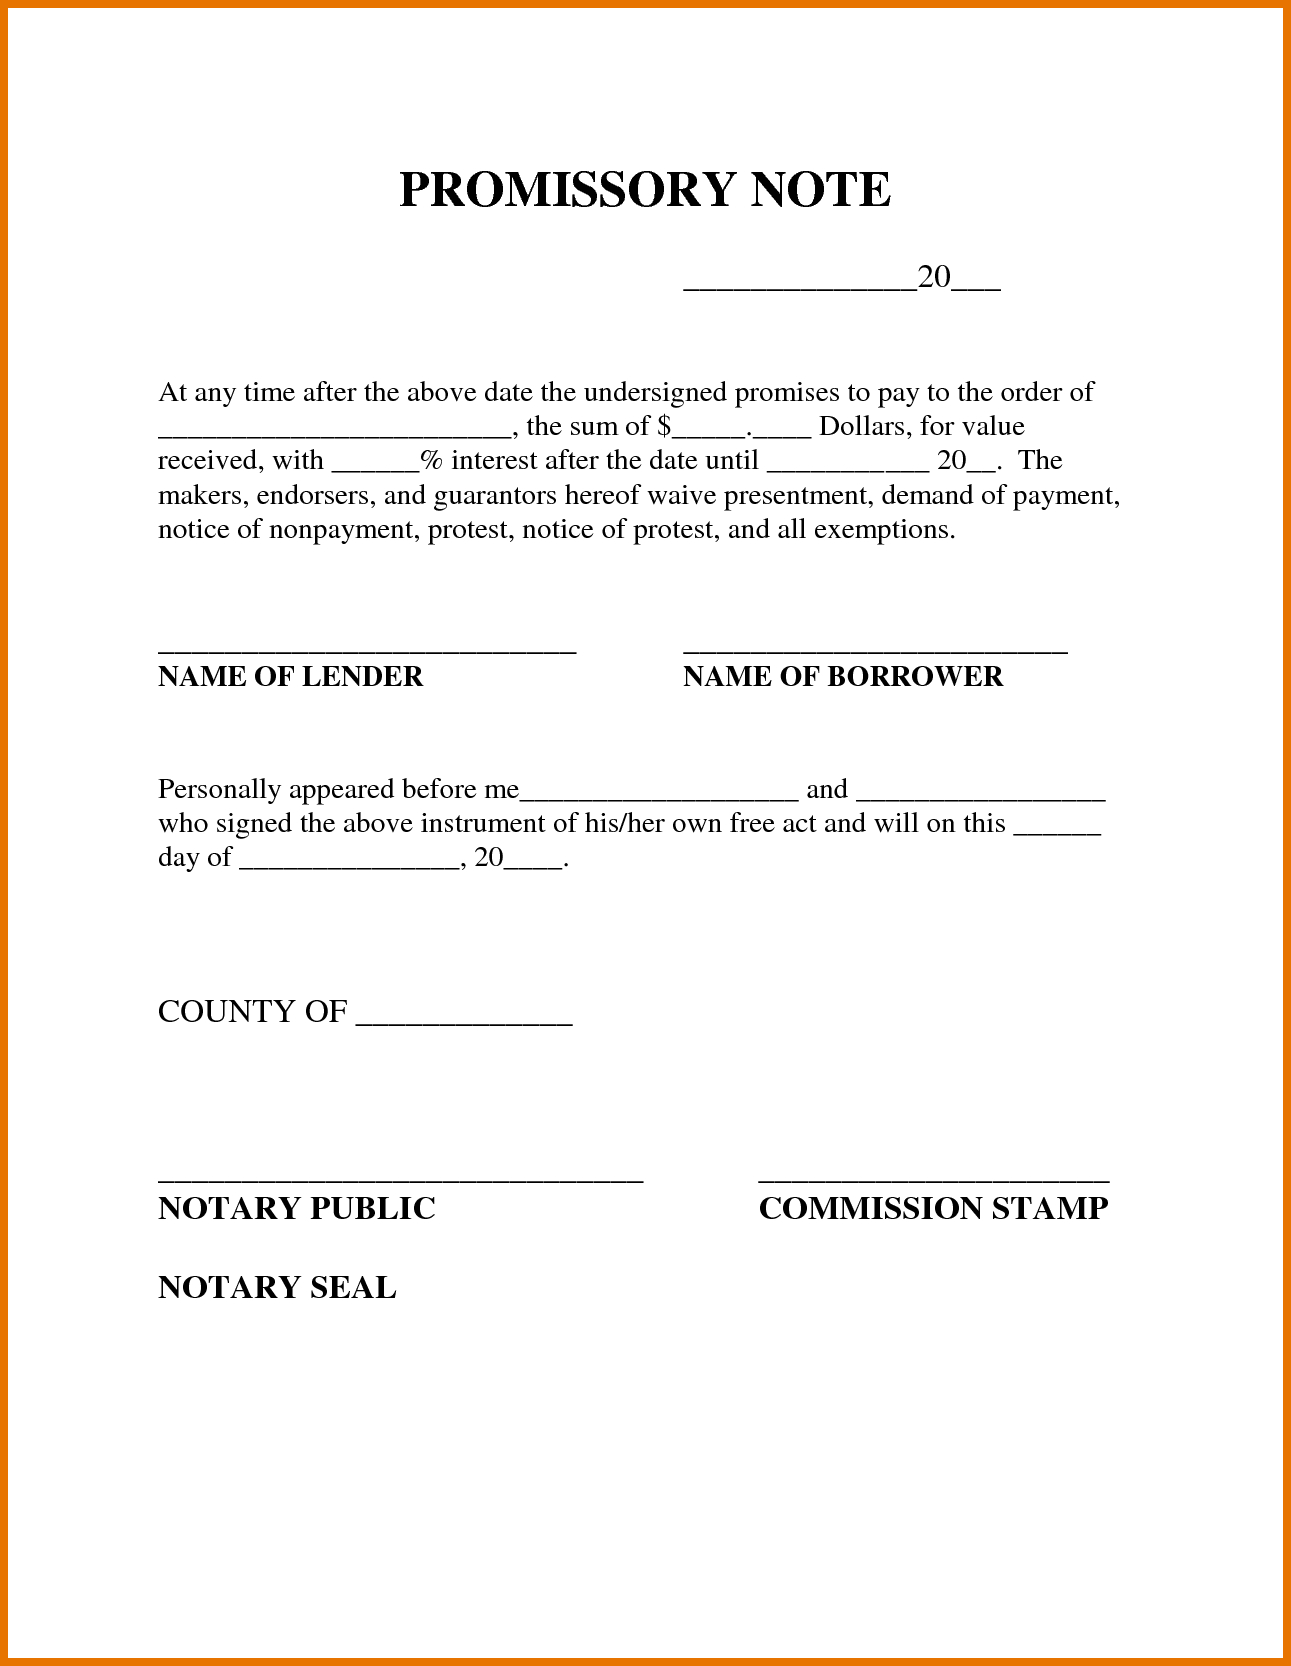 Free Printable Promissory Note Template : Violeet - Free Printable Promissory Note Template